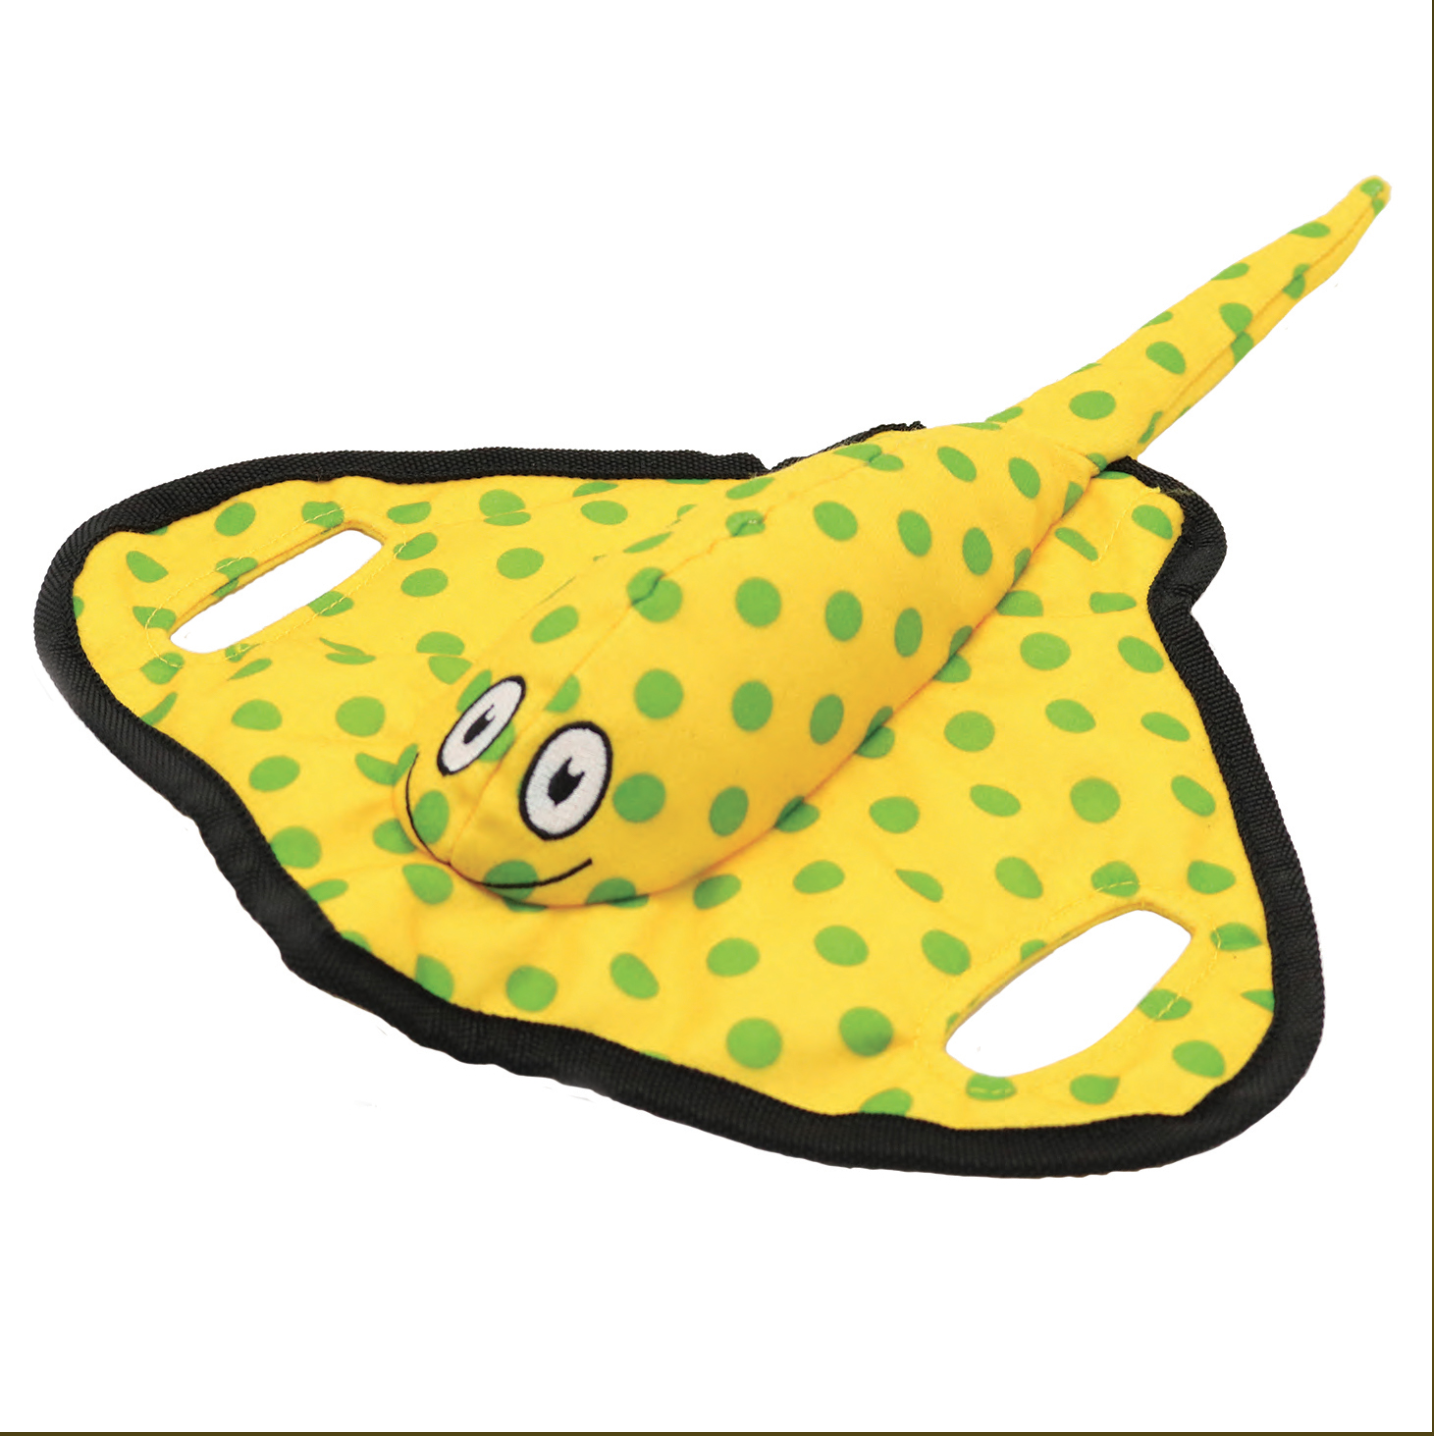 TT-Tug - Yellow Sting Ray - Small